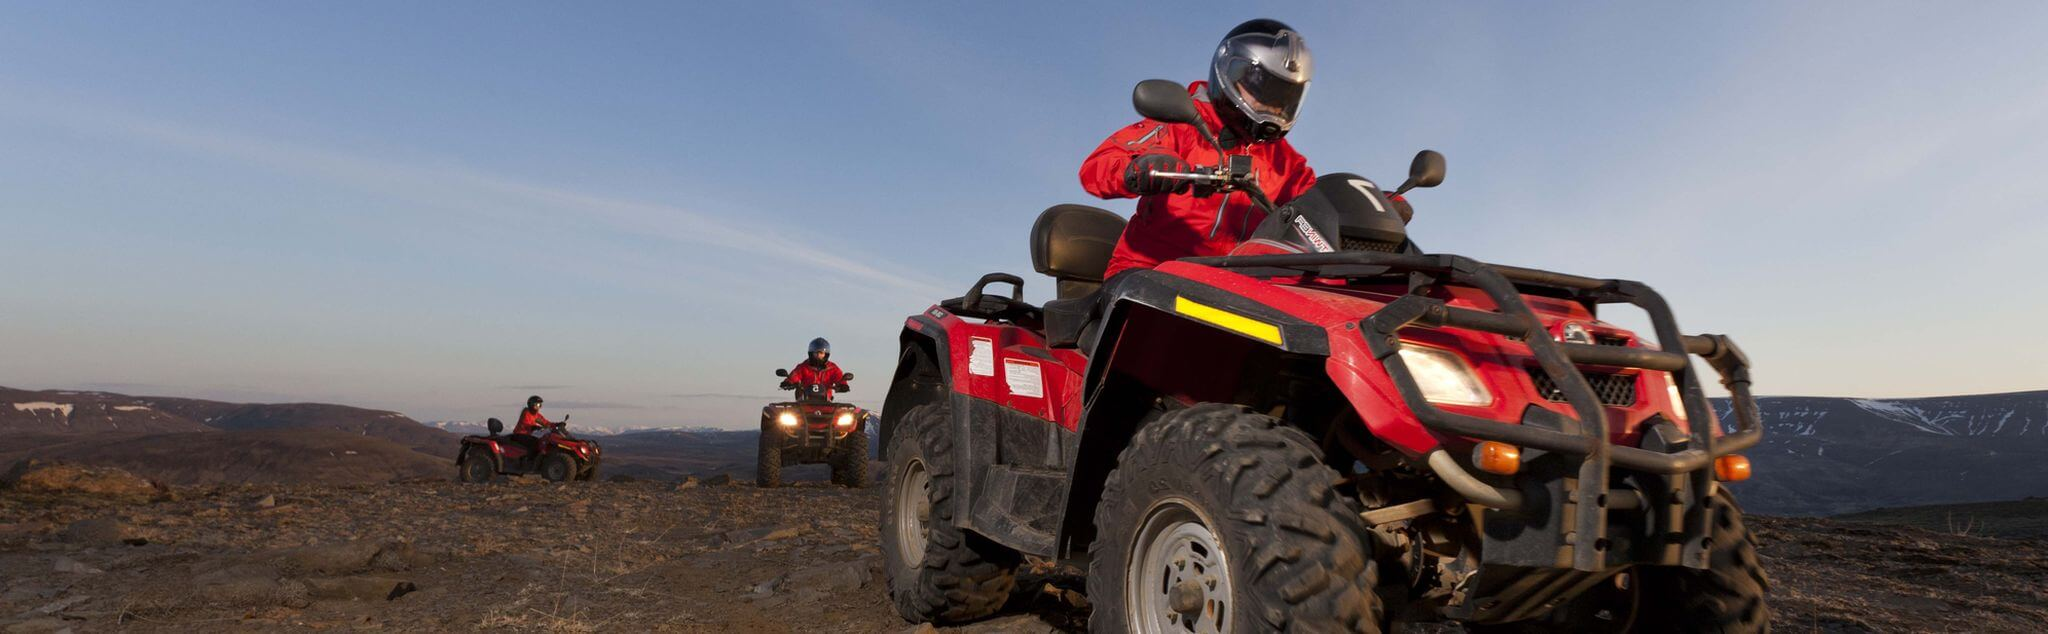 Quad Biking in Encamp